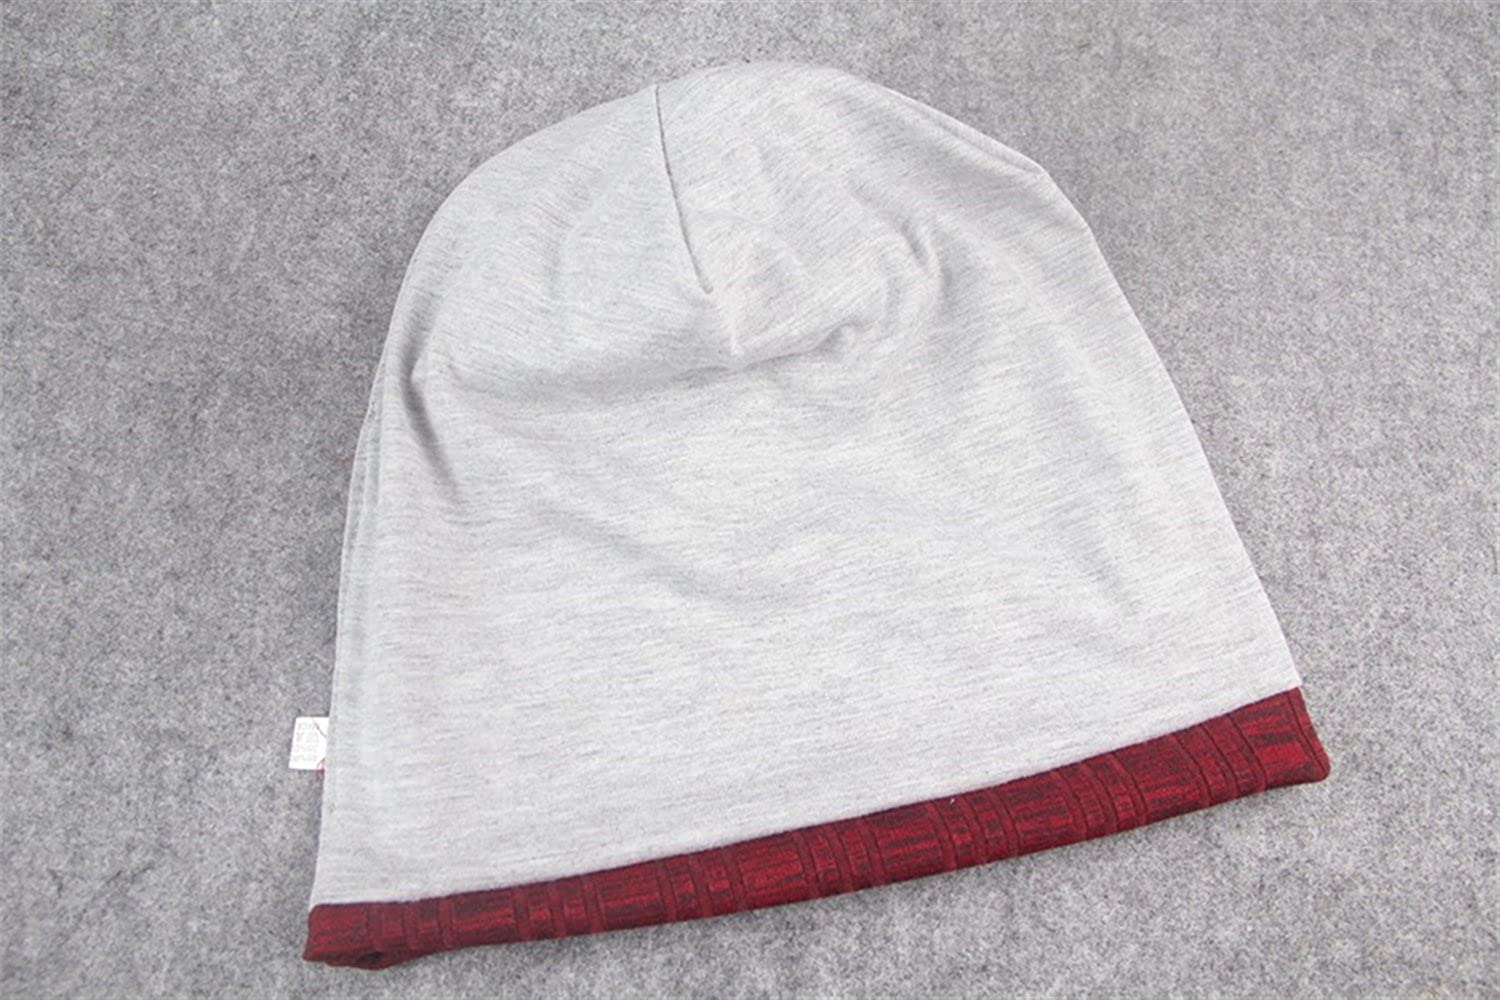 Unisex Slivery Color Olancha 100/% Knit Wool Cuffed or Slouchy Ribbed Midweight Beanie Cap for Men or Women